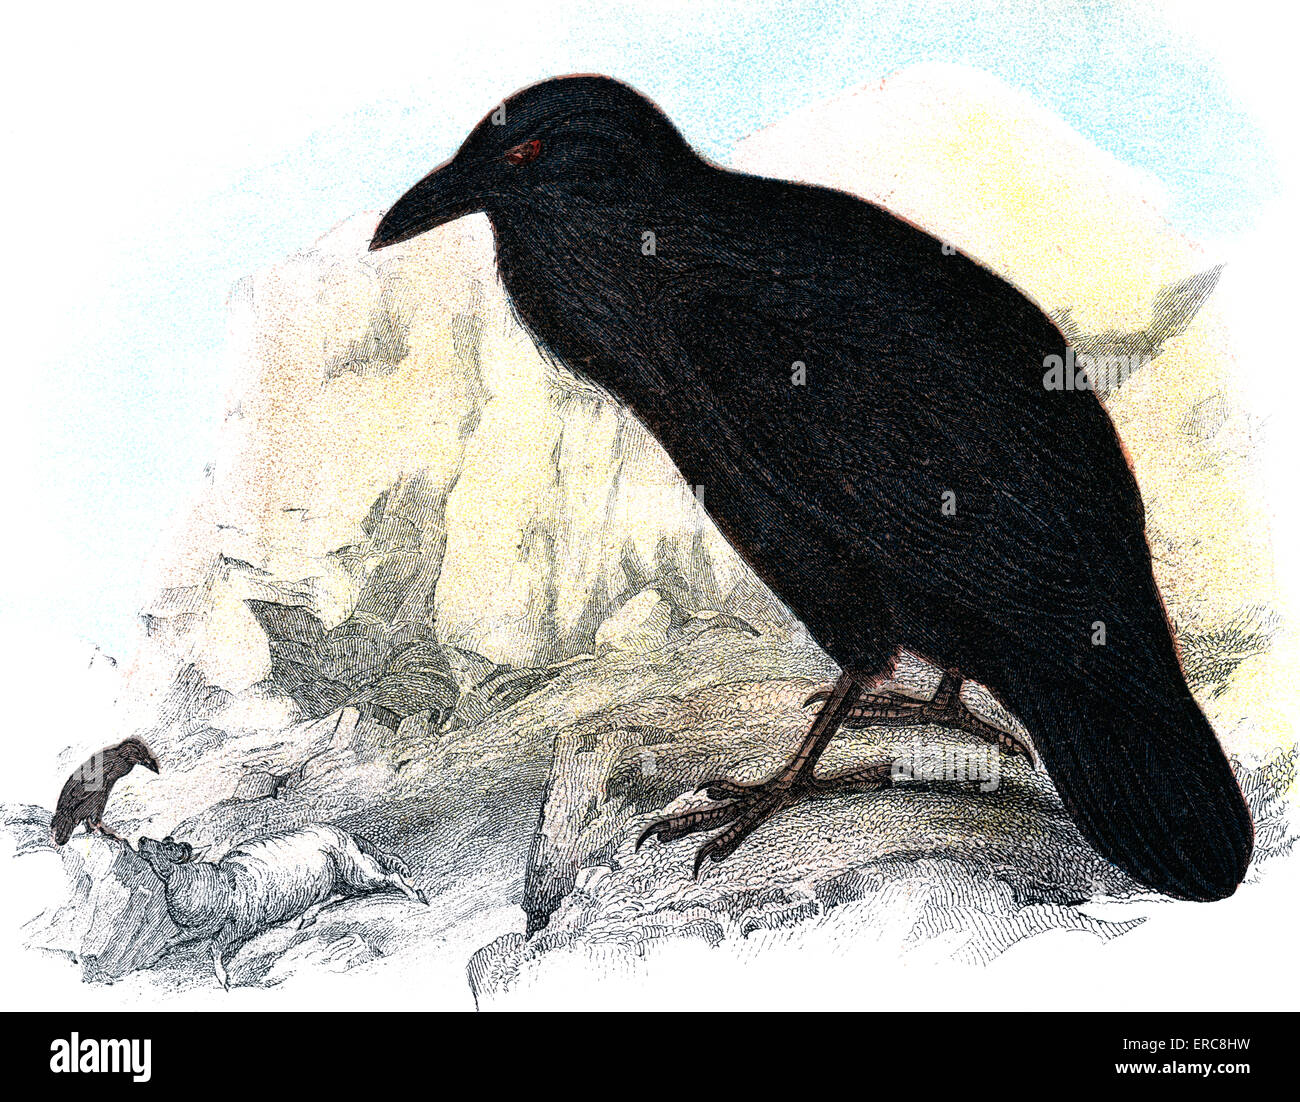 ILLUSTRATION BLACK RAVEN ON LEDGE LOOKING DOWN ON SCAVENGING BIRD WITH SHEEP - Stock Image